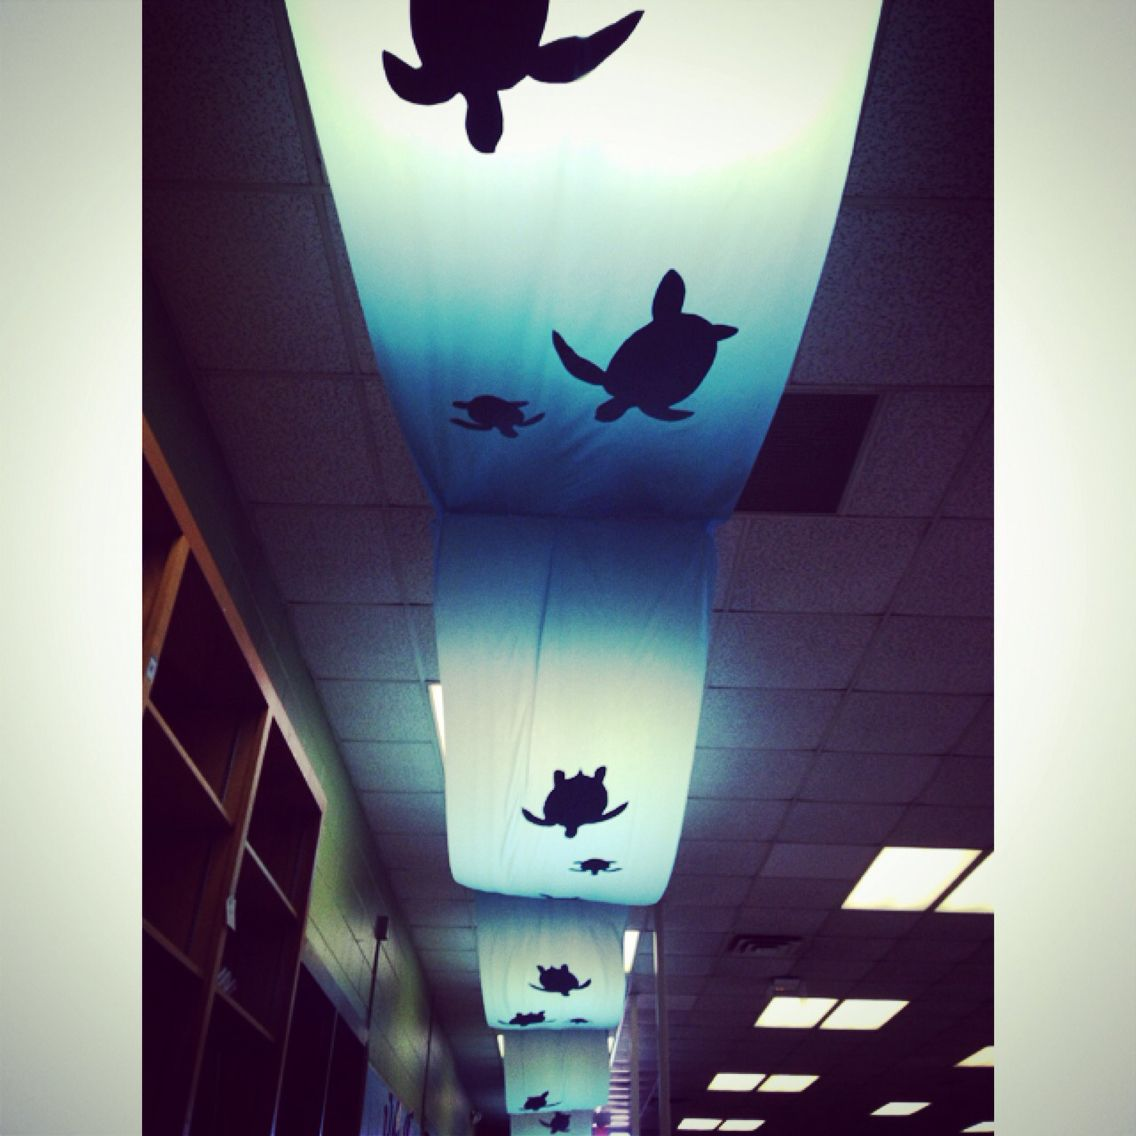 Sea Turtle Ceiling Decoration Using Table Cloths And Paper Cut Out Turtles Back Lit By Lights Perfect For Under The Themed Events